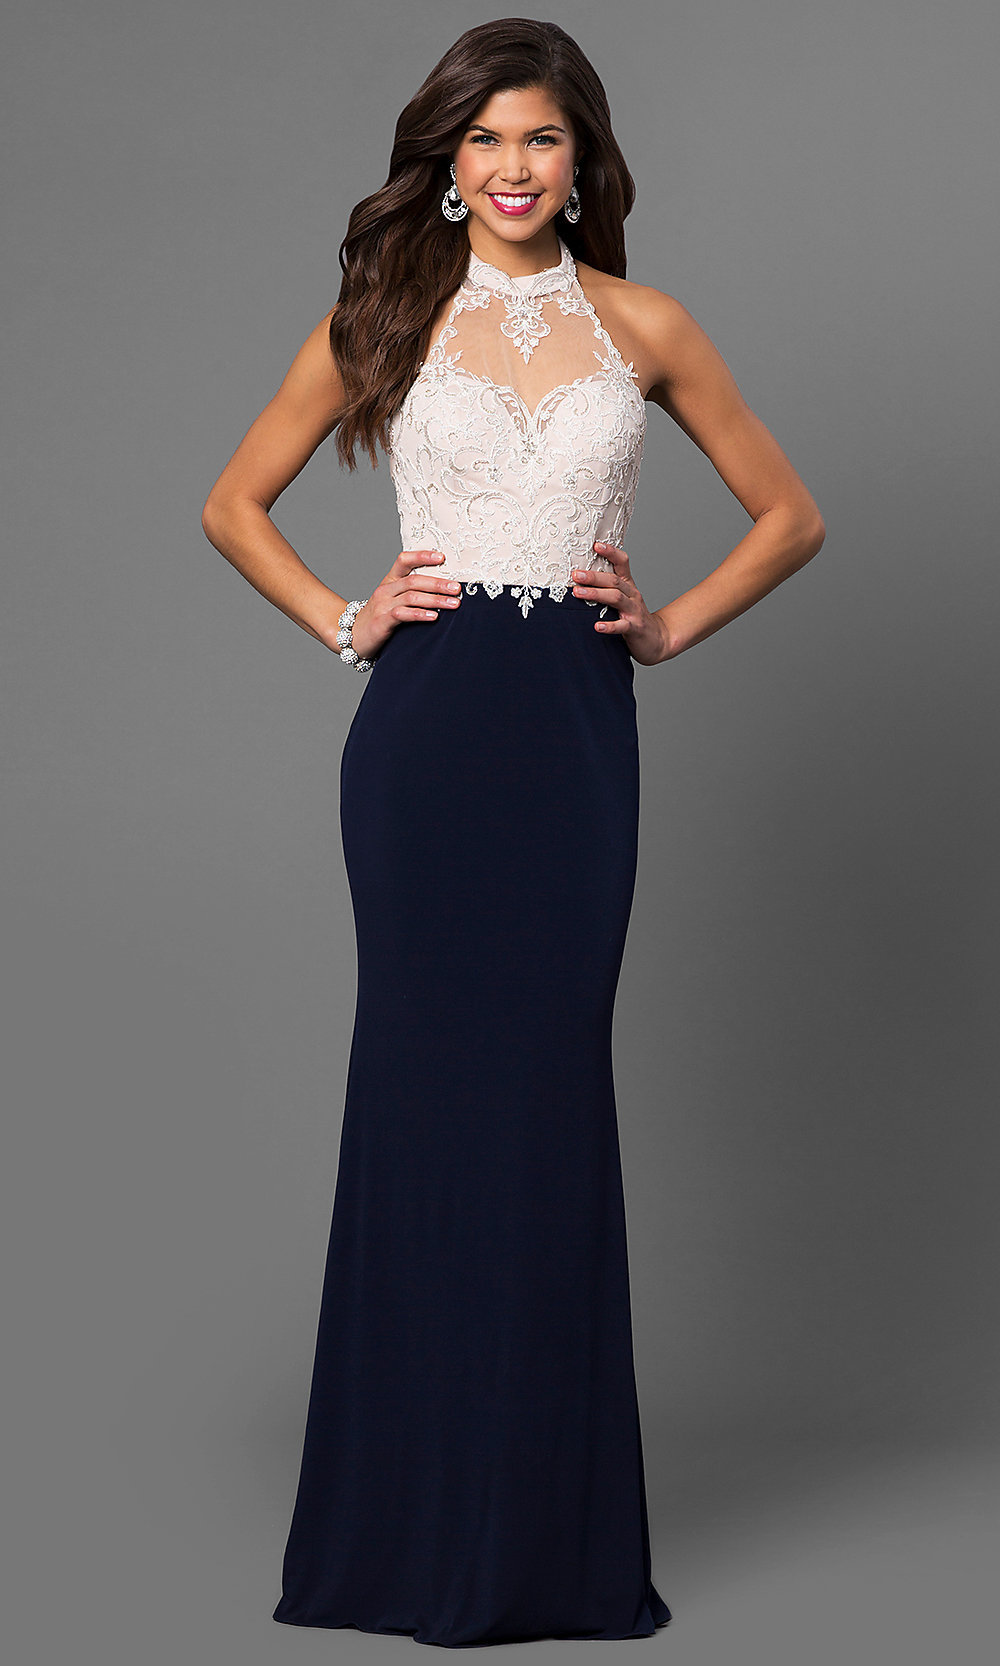 2 in 1 evening dress for rent